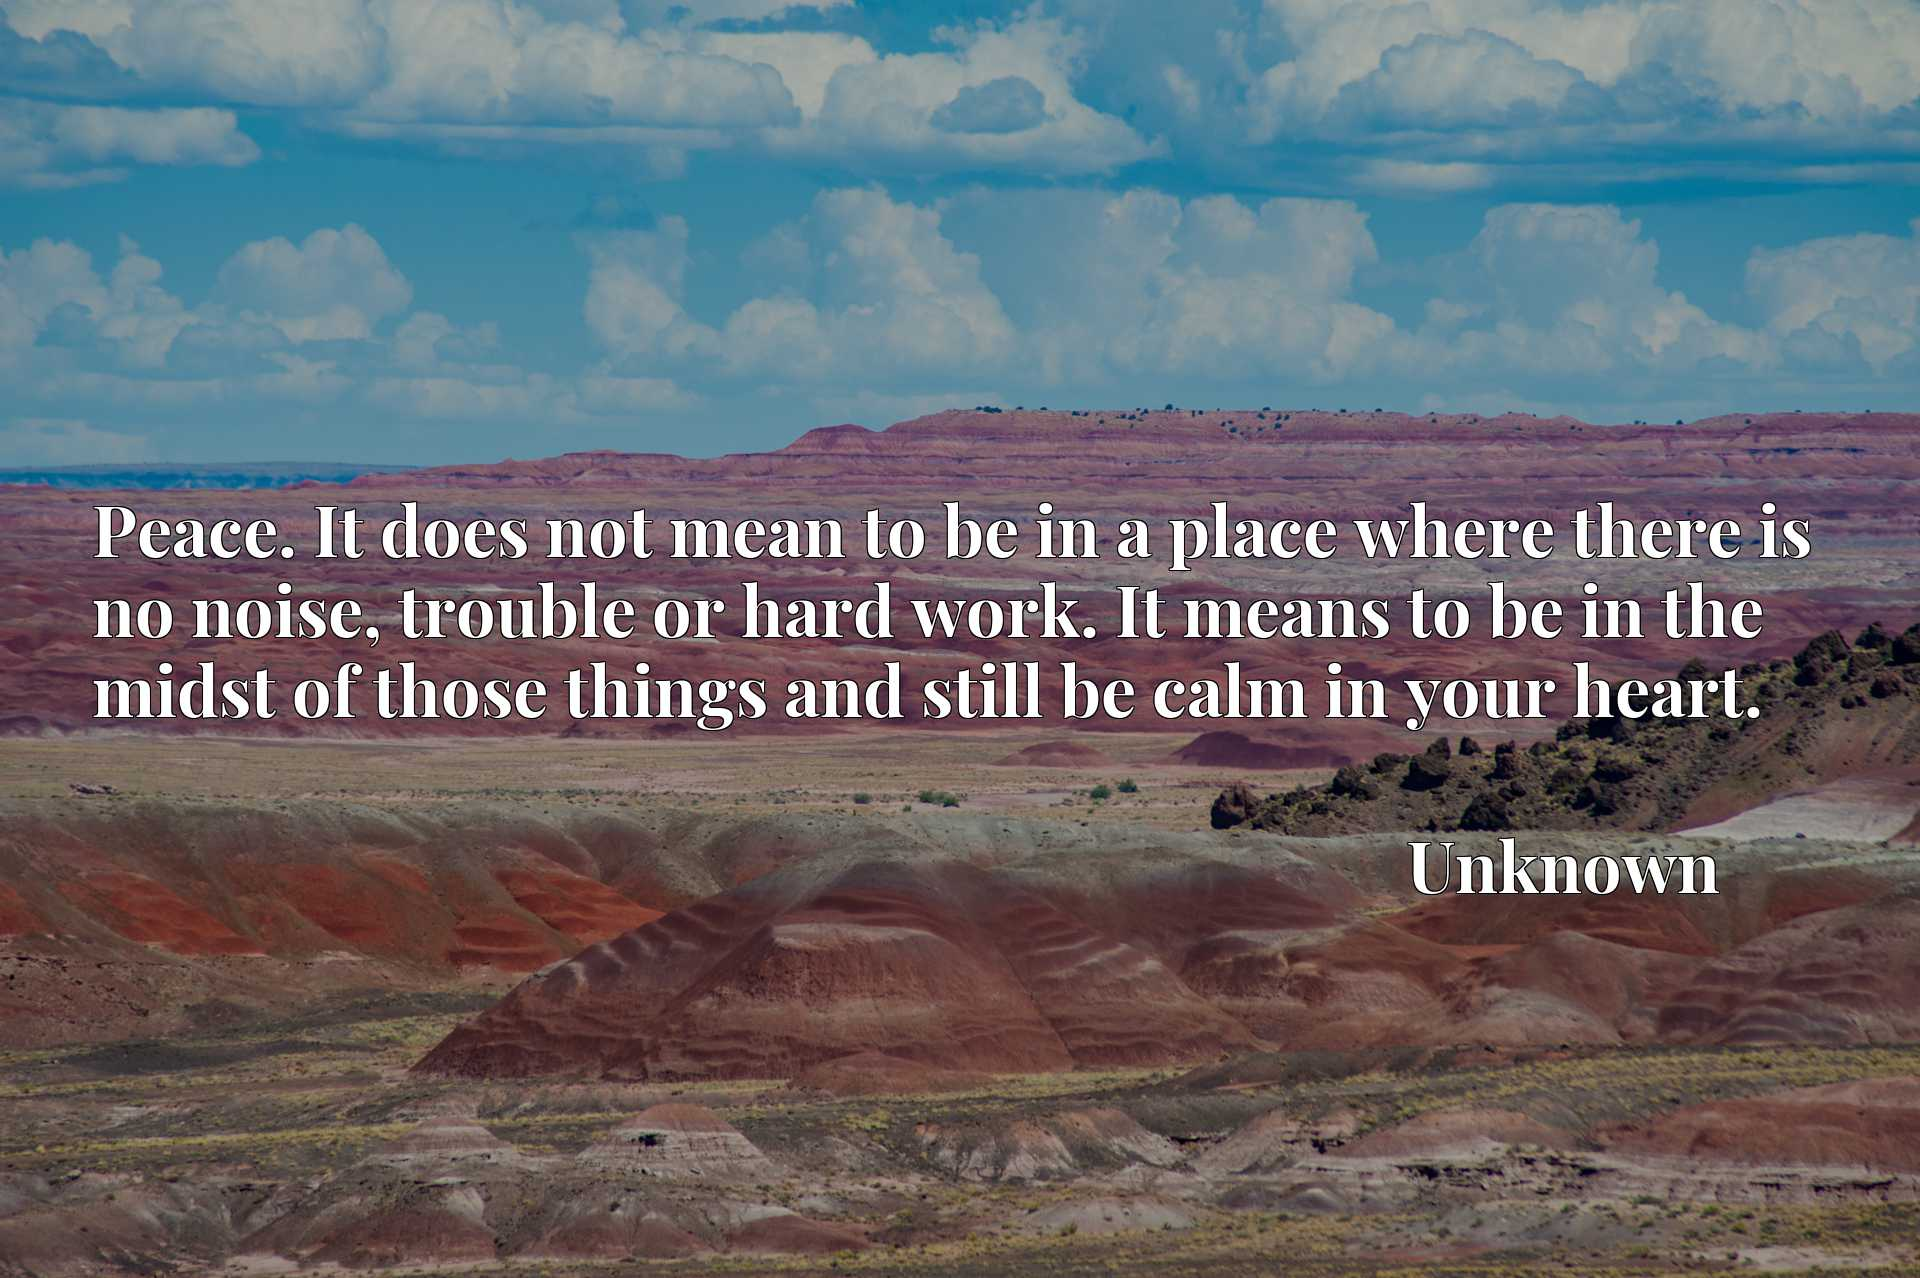 Quote Picture :Peace. It does not mean to be in a place where there is no noise, trouble or hard work. It means to be in the midst of those things and still be calm in your heart.